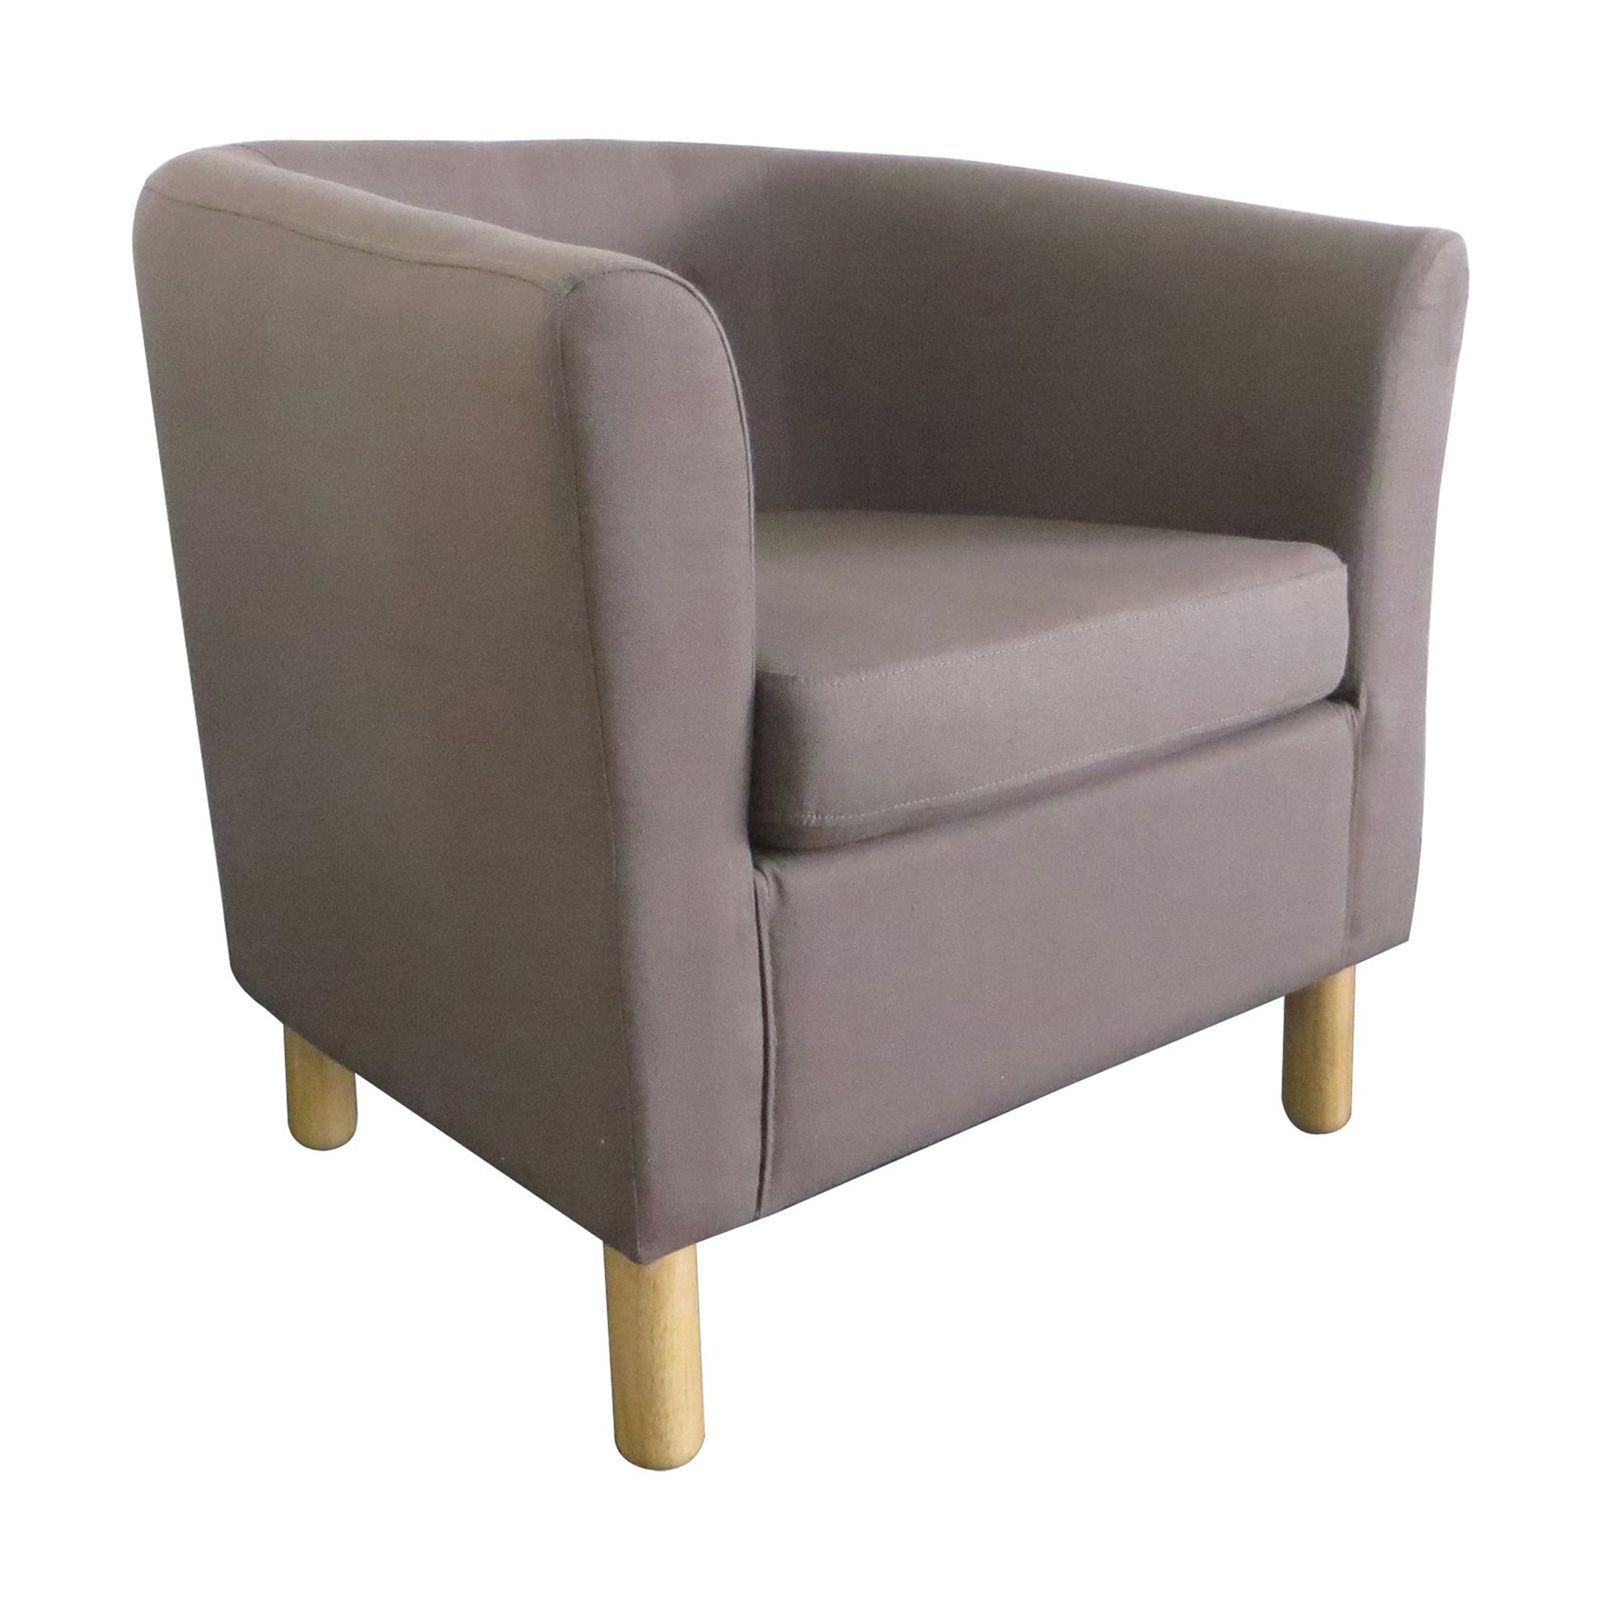 Potiron charme fauteuil club taupe brandalley - Fauteuil potiron soldes ...